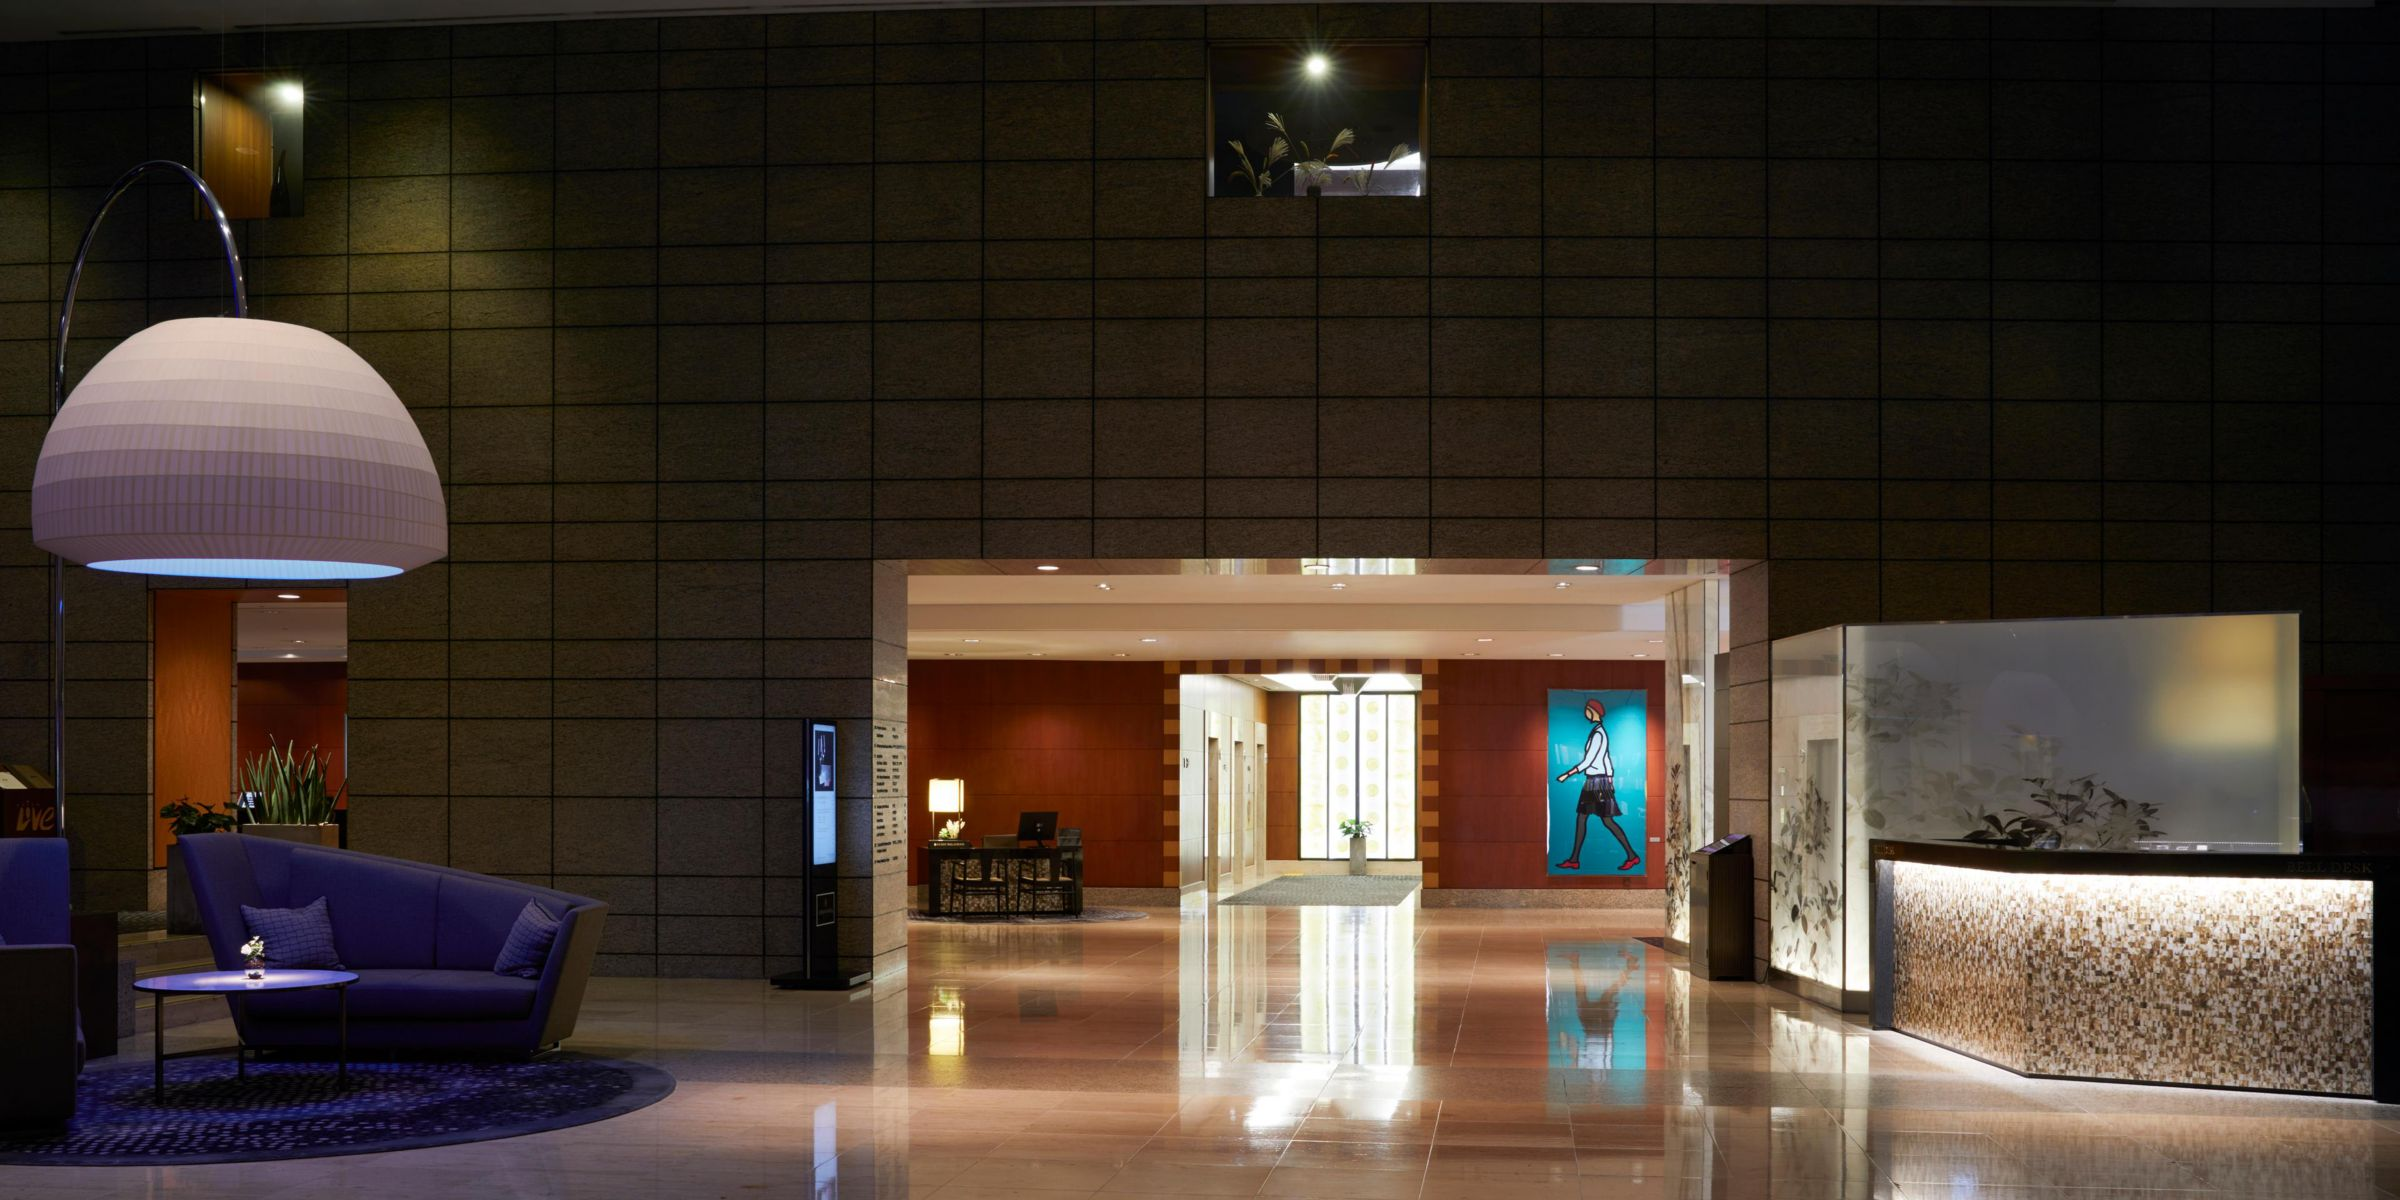 Intercontinental seoul coex gangnam hotel with conference rooms